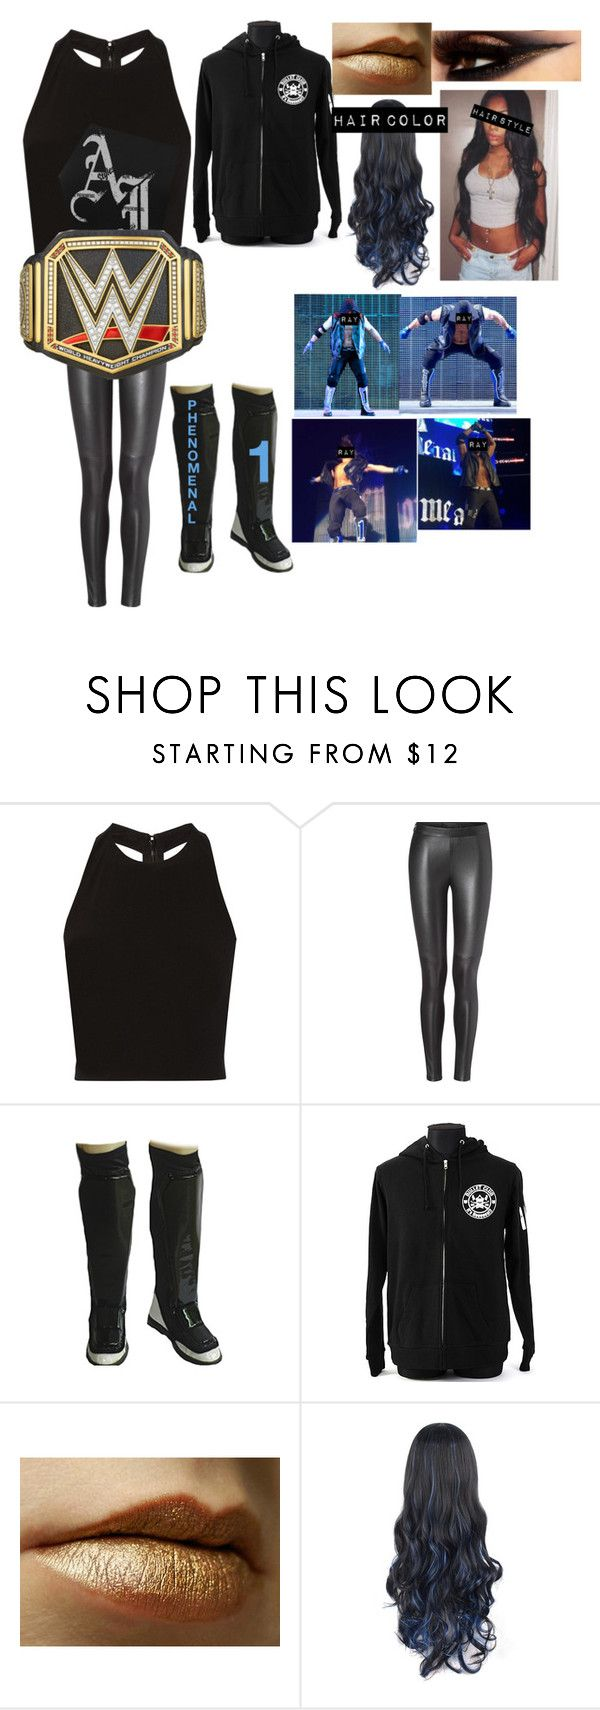 """Ray styles-distraction"" by princess-nikki123 ❤ liked on Polyvore featuring Alice + Olivia and WWE"